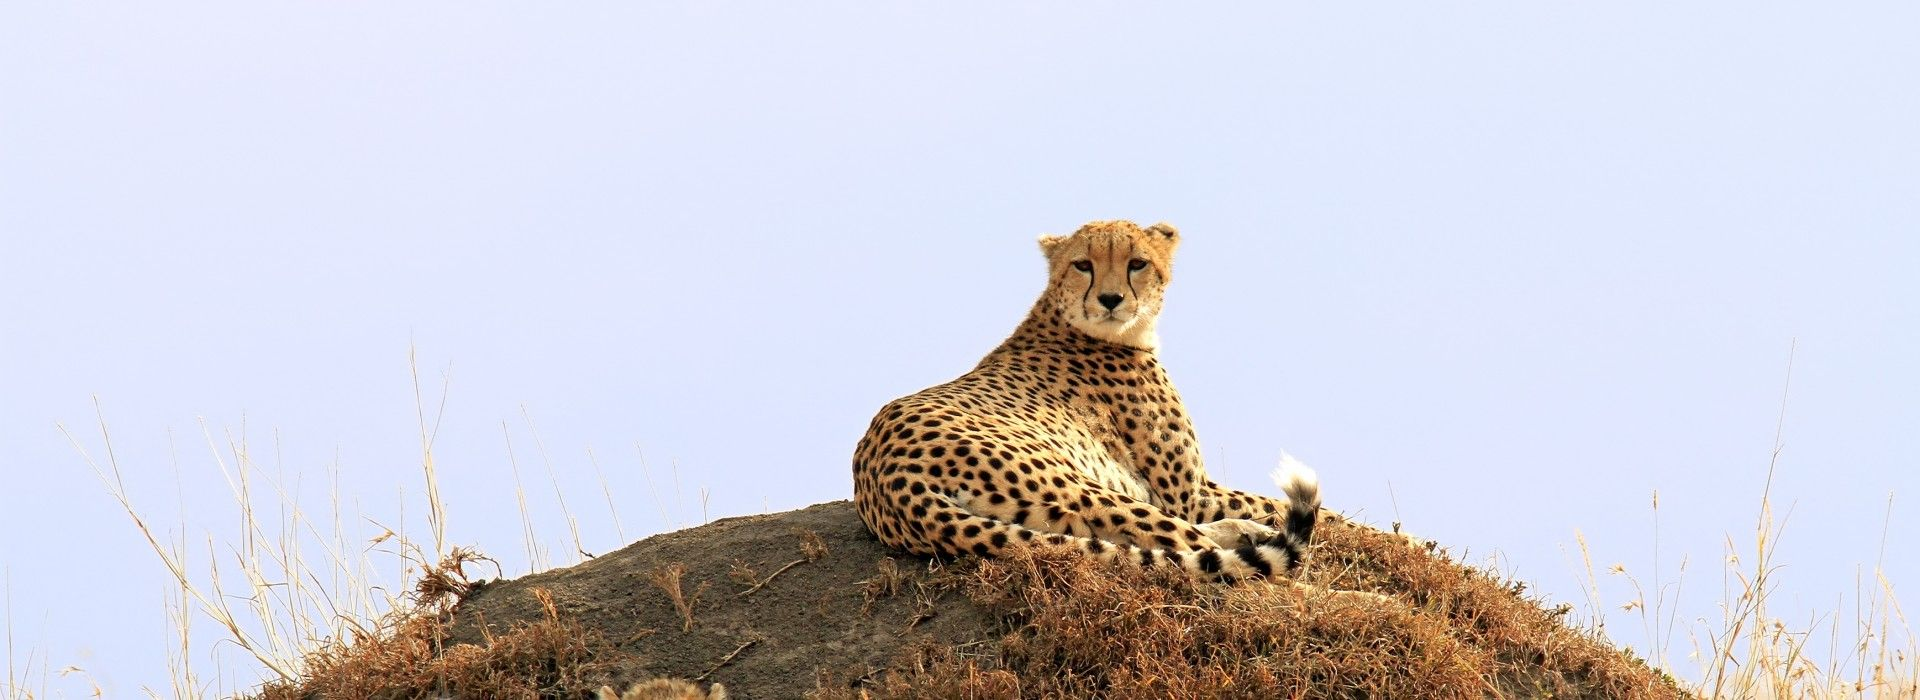 Wildlife, landscapes and nature Tours in Kenya